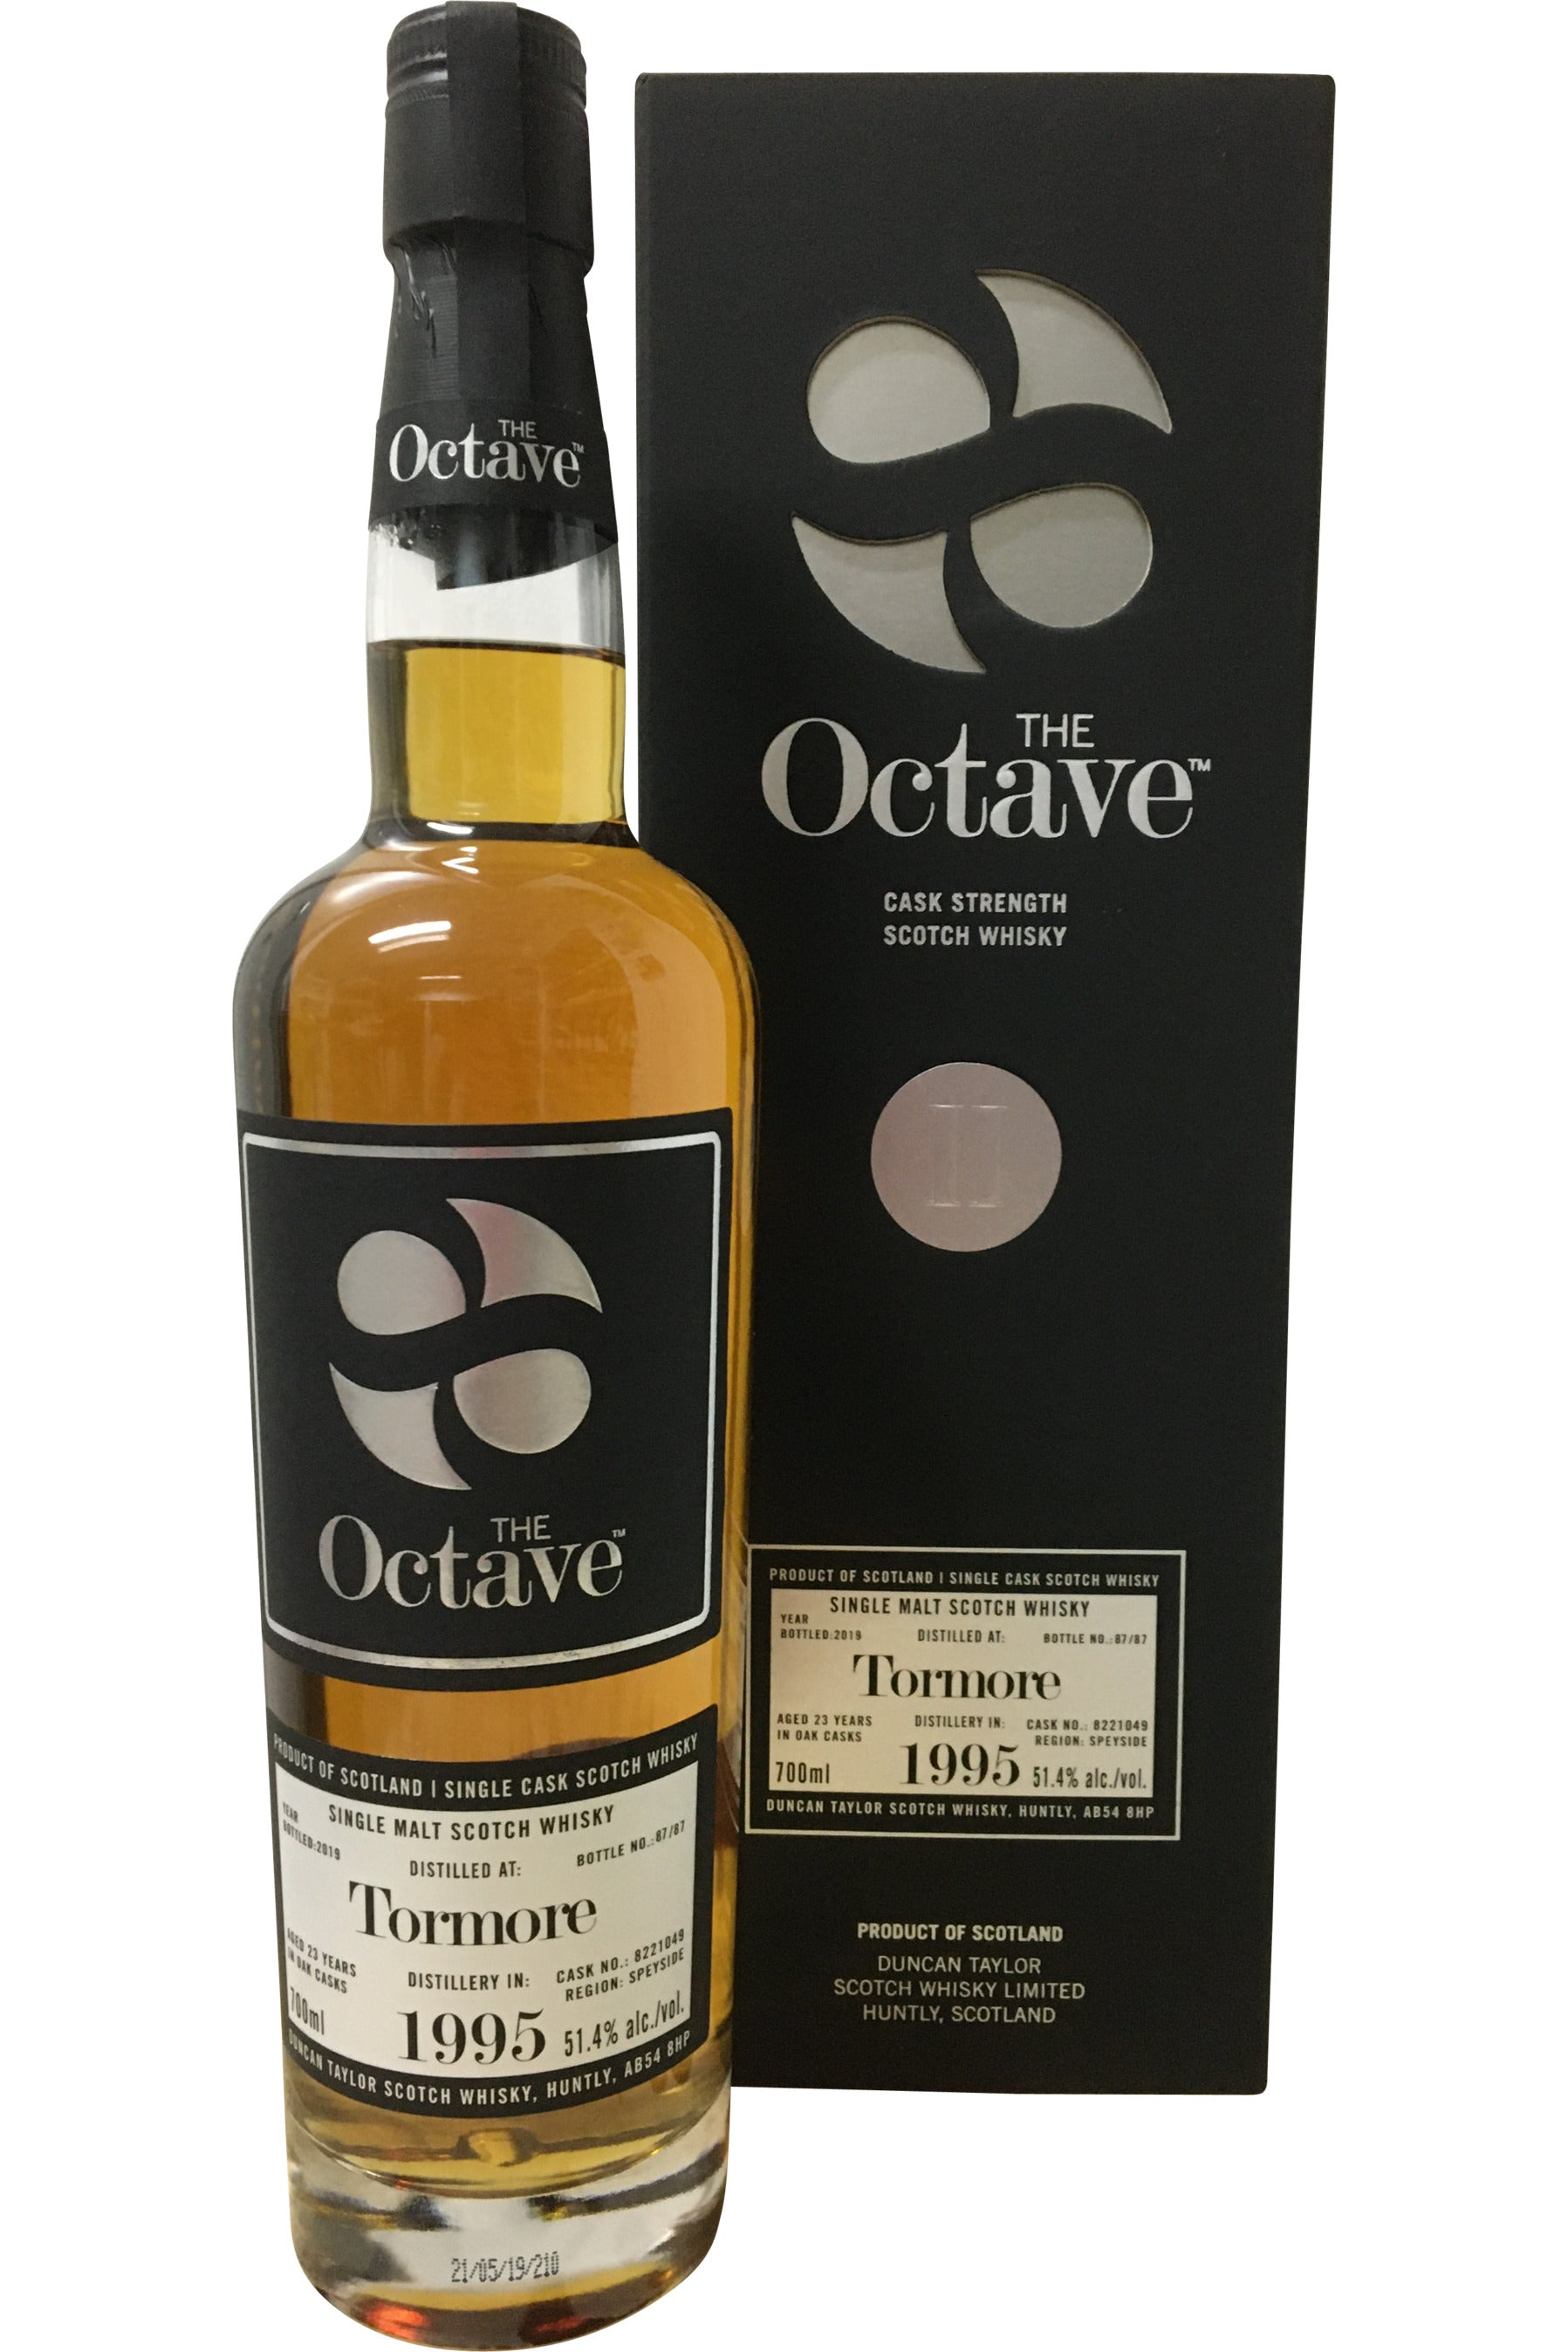 The Octave Premium Tormore 1995 23 Year Old #8221049 Whisky - 51.4% 700ml